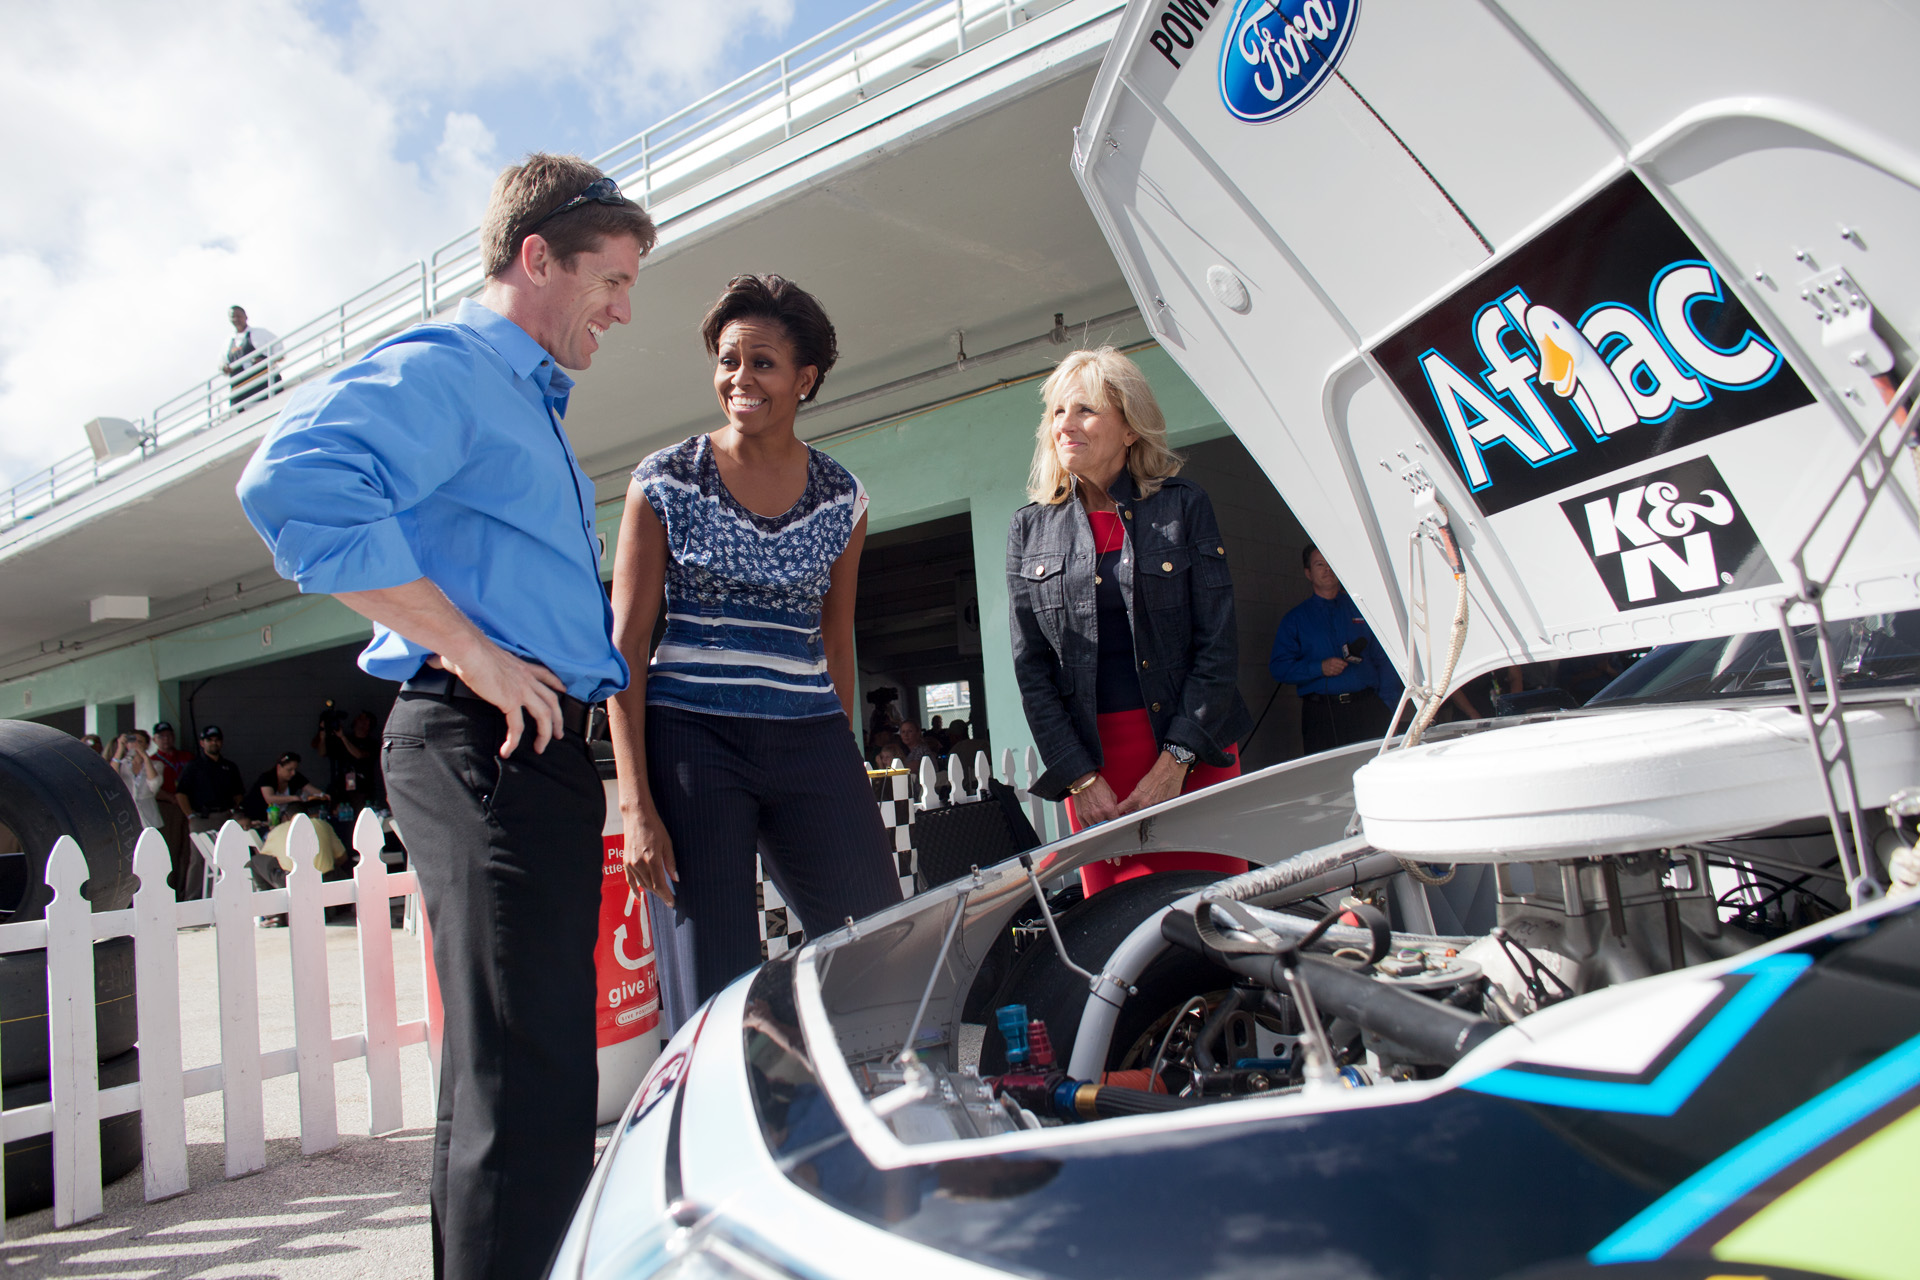 First Lady Michelle Obama and Dr. Jill Biden get a look under the hood of Carl Edwards' car at NASCAR race